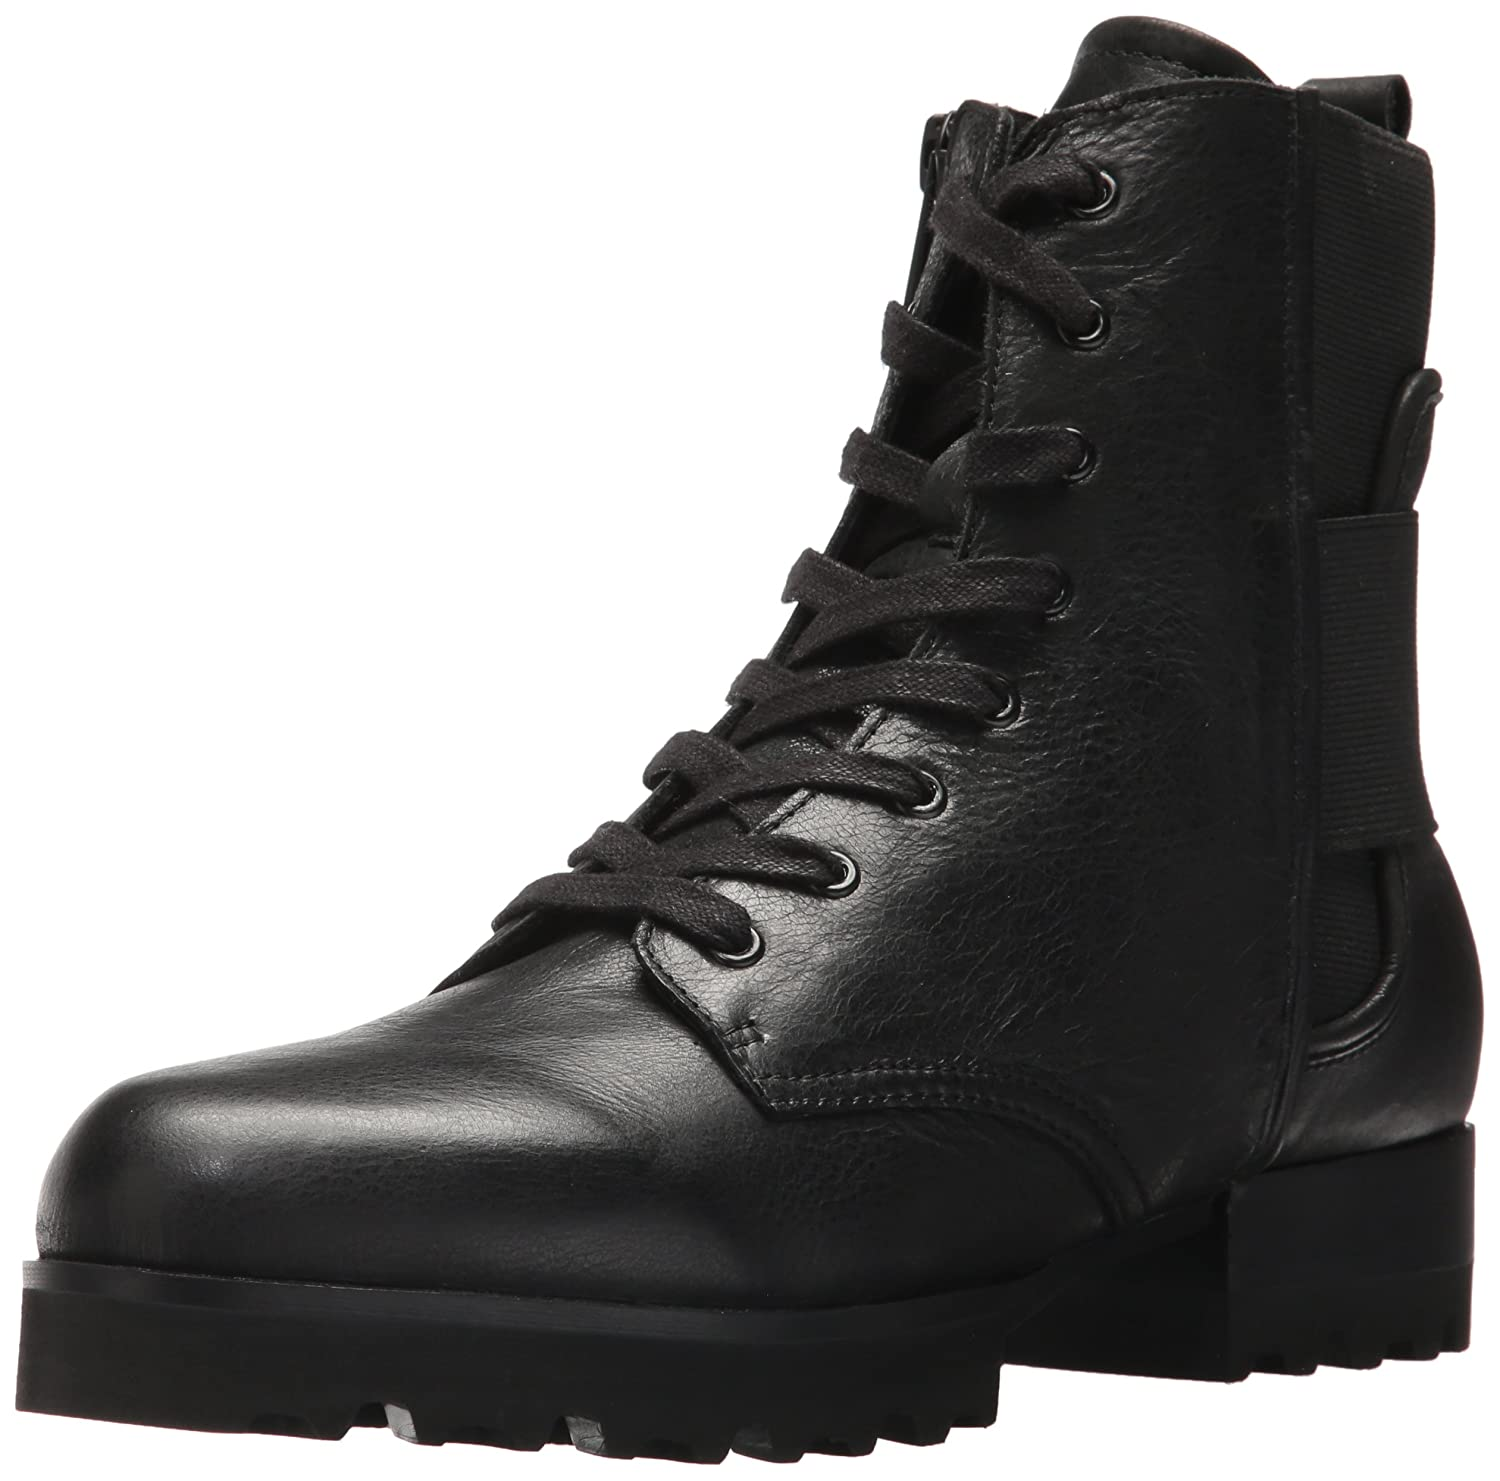 Donald J Pliner Women's ESA Fashion Boot B06XP62FBL 6.5 B(M) US|Black